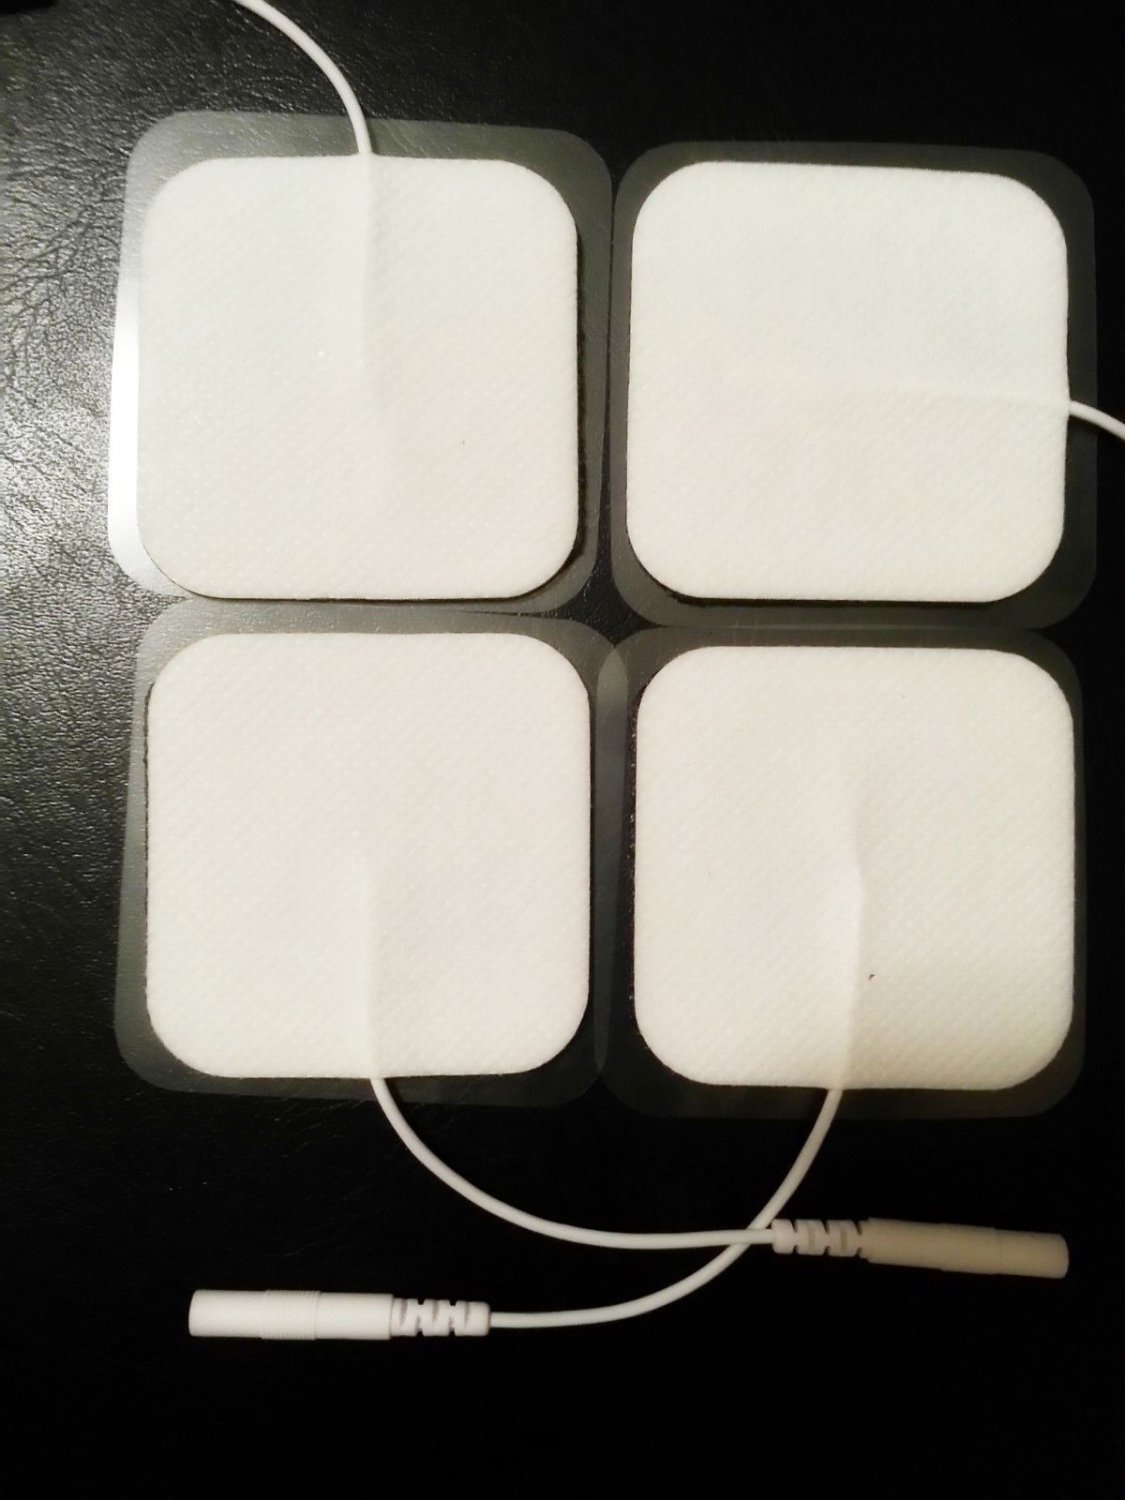 32 PC SQUARE REPLACEMENT ELECTRODE MASSAGE PADS-TENS 3000, 7000 COMPATIBLE